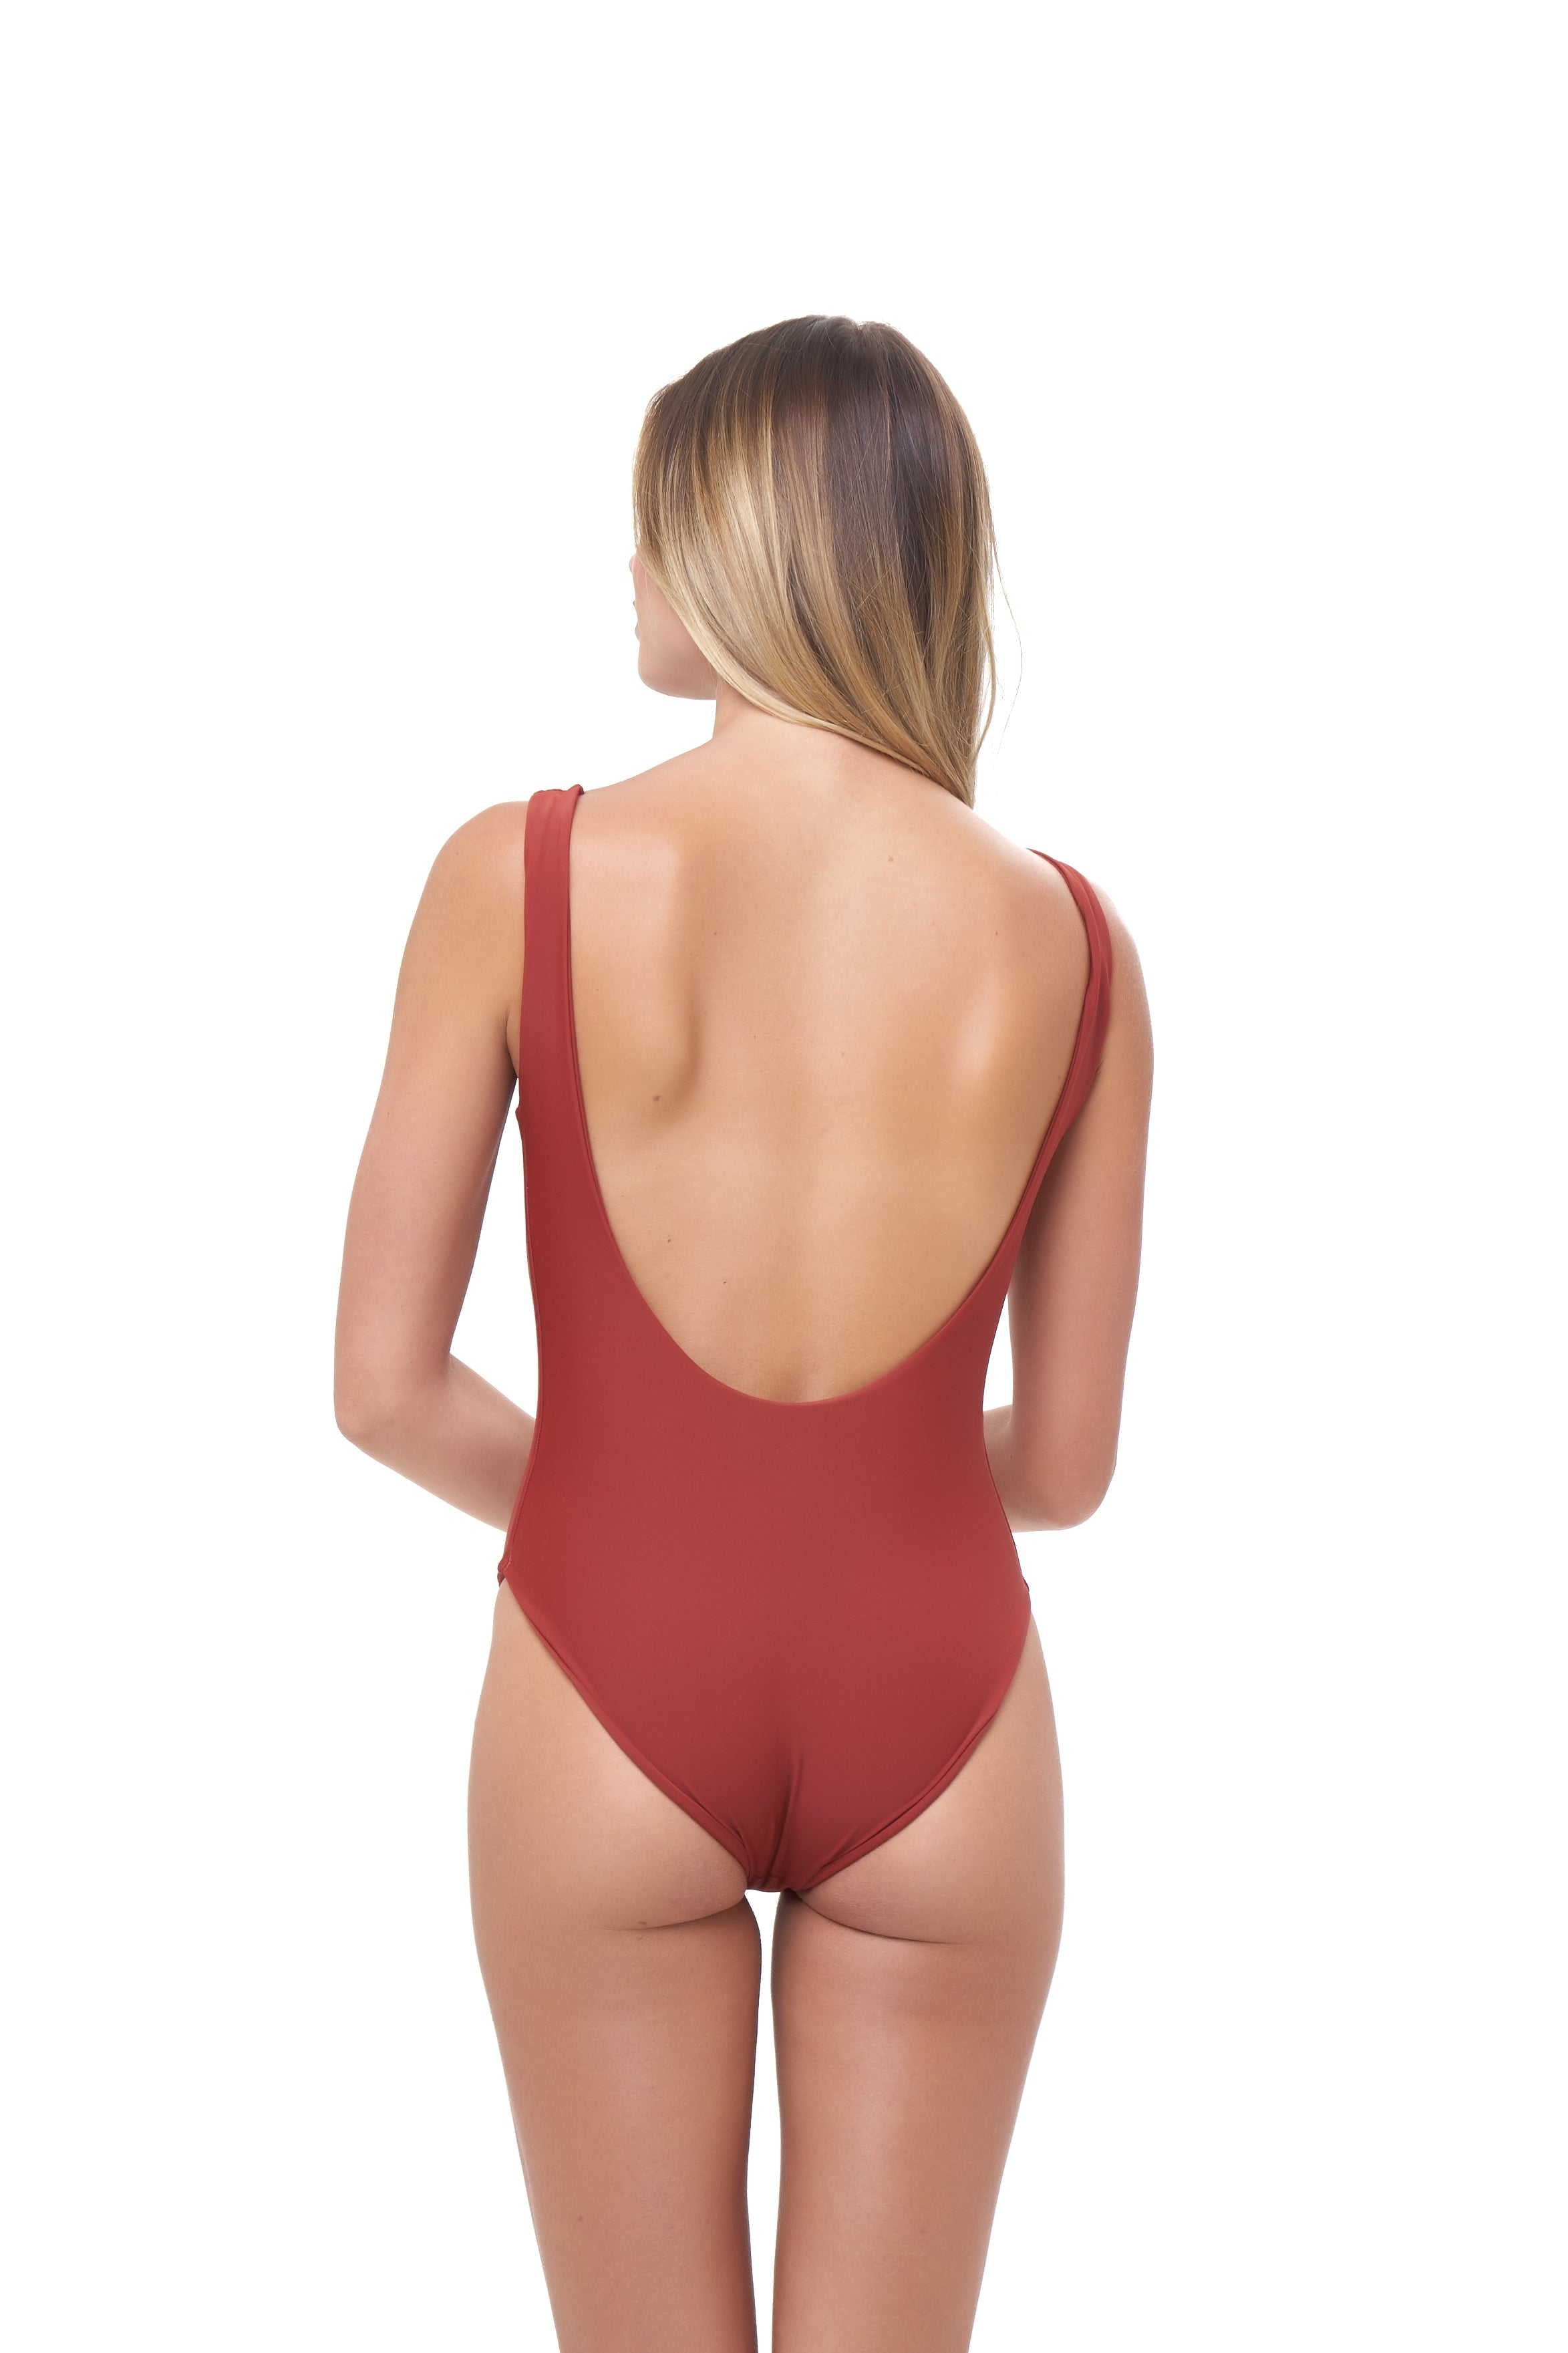 Storm Swimwear - Corsica - Lace Up One Piece in Desert Sand